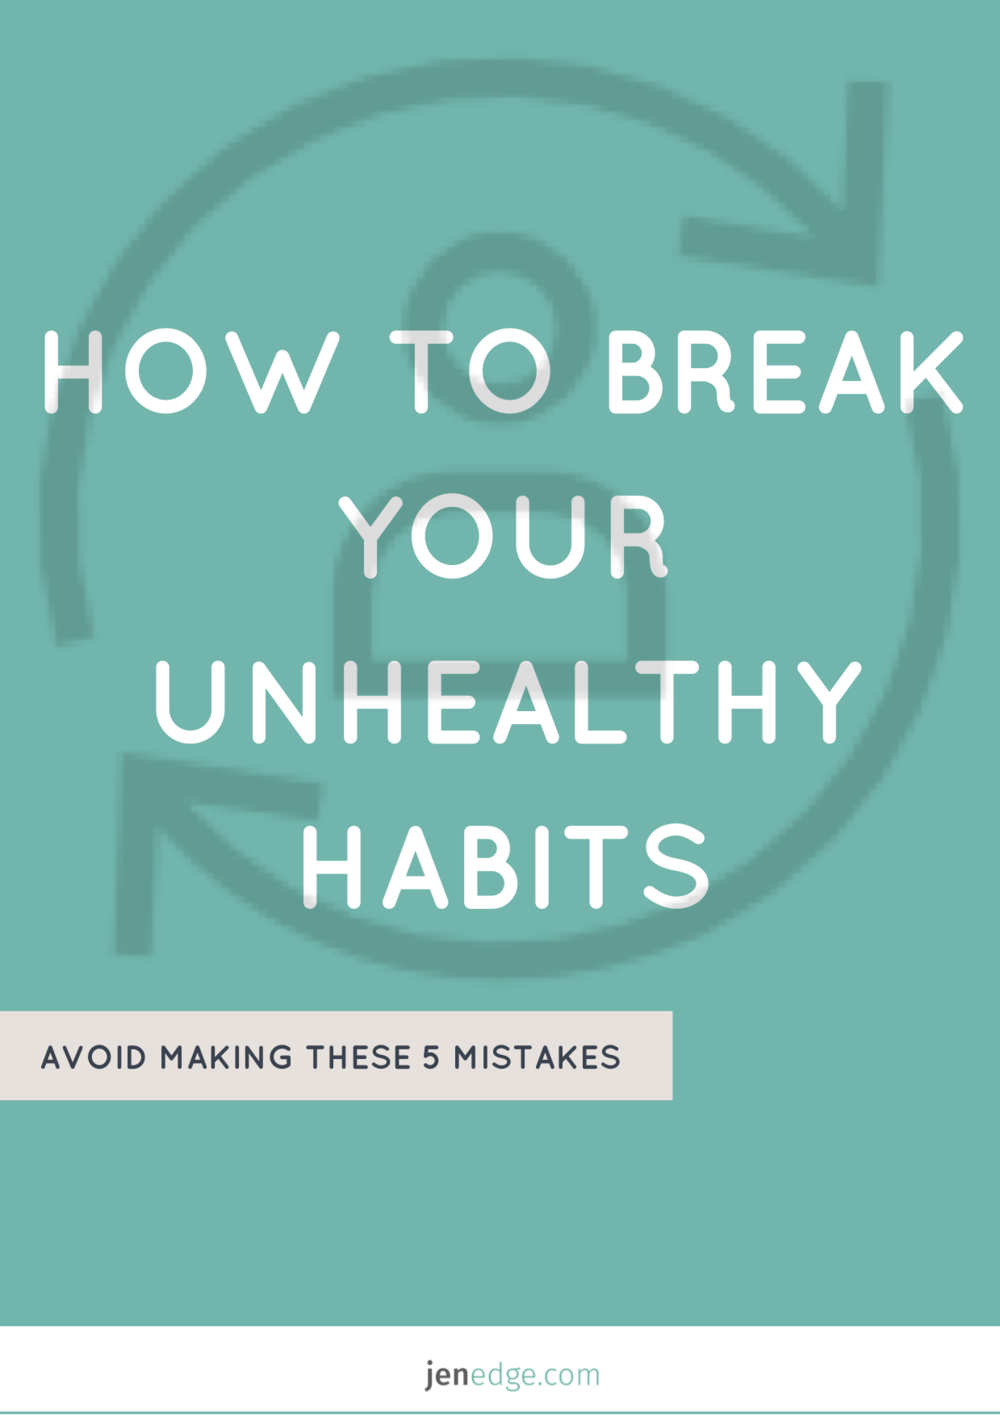 LM - Habits front page2.png